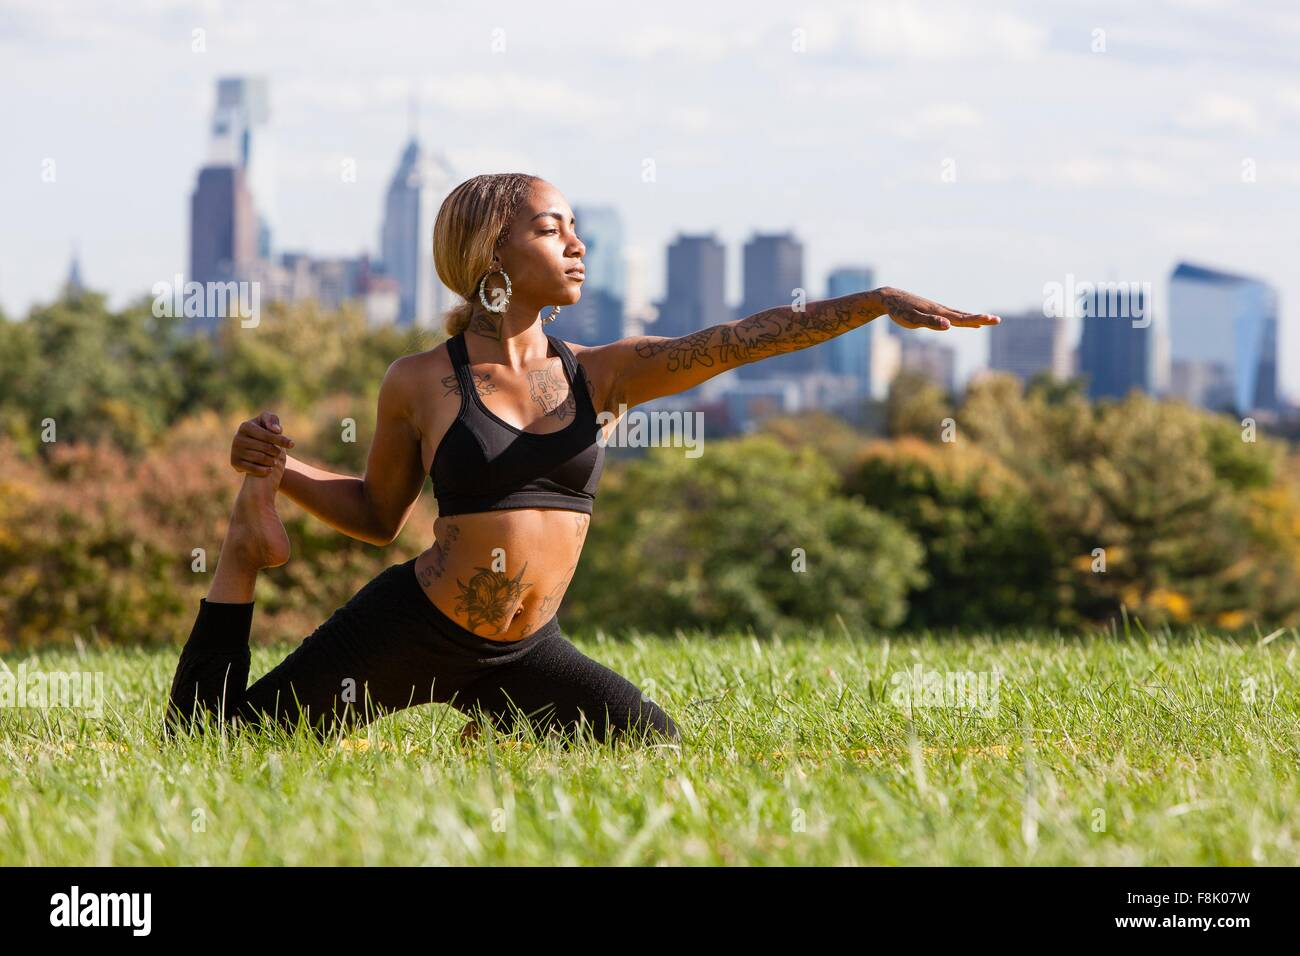 Front view of young woman kneeling on grass stretching leg in yoga position, arm out, looking away, Philadelphia, - Stock Image